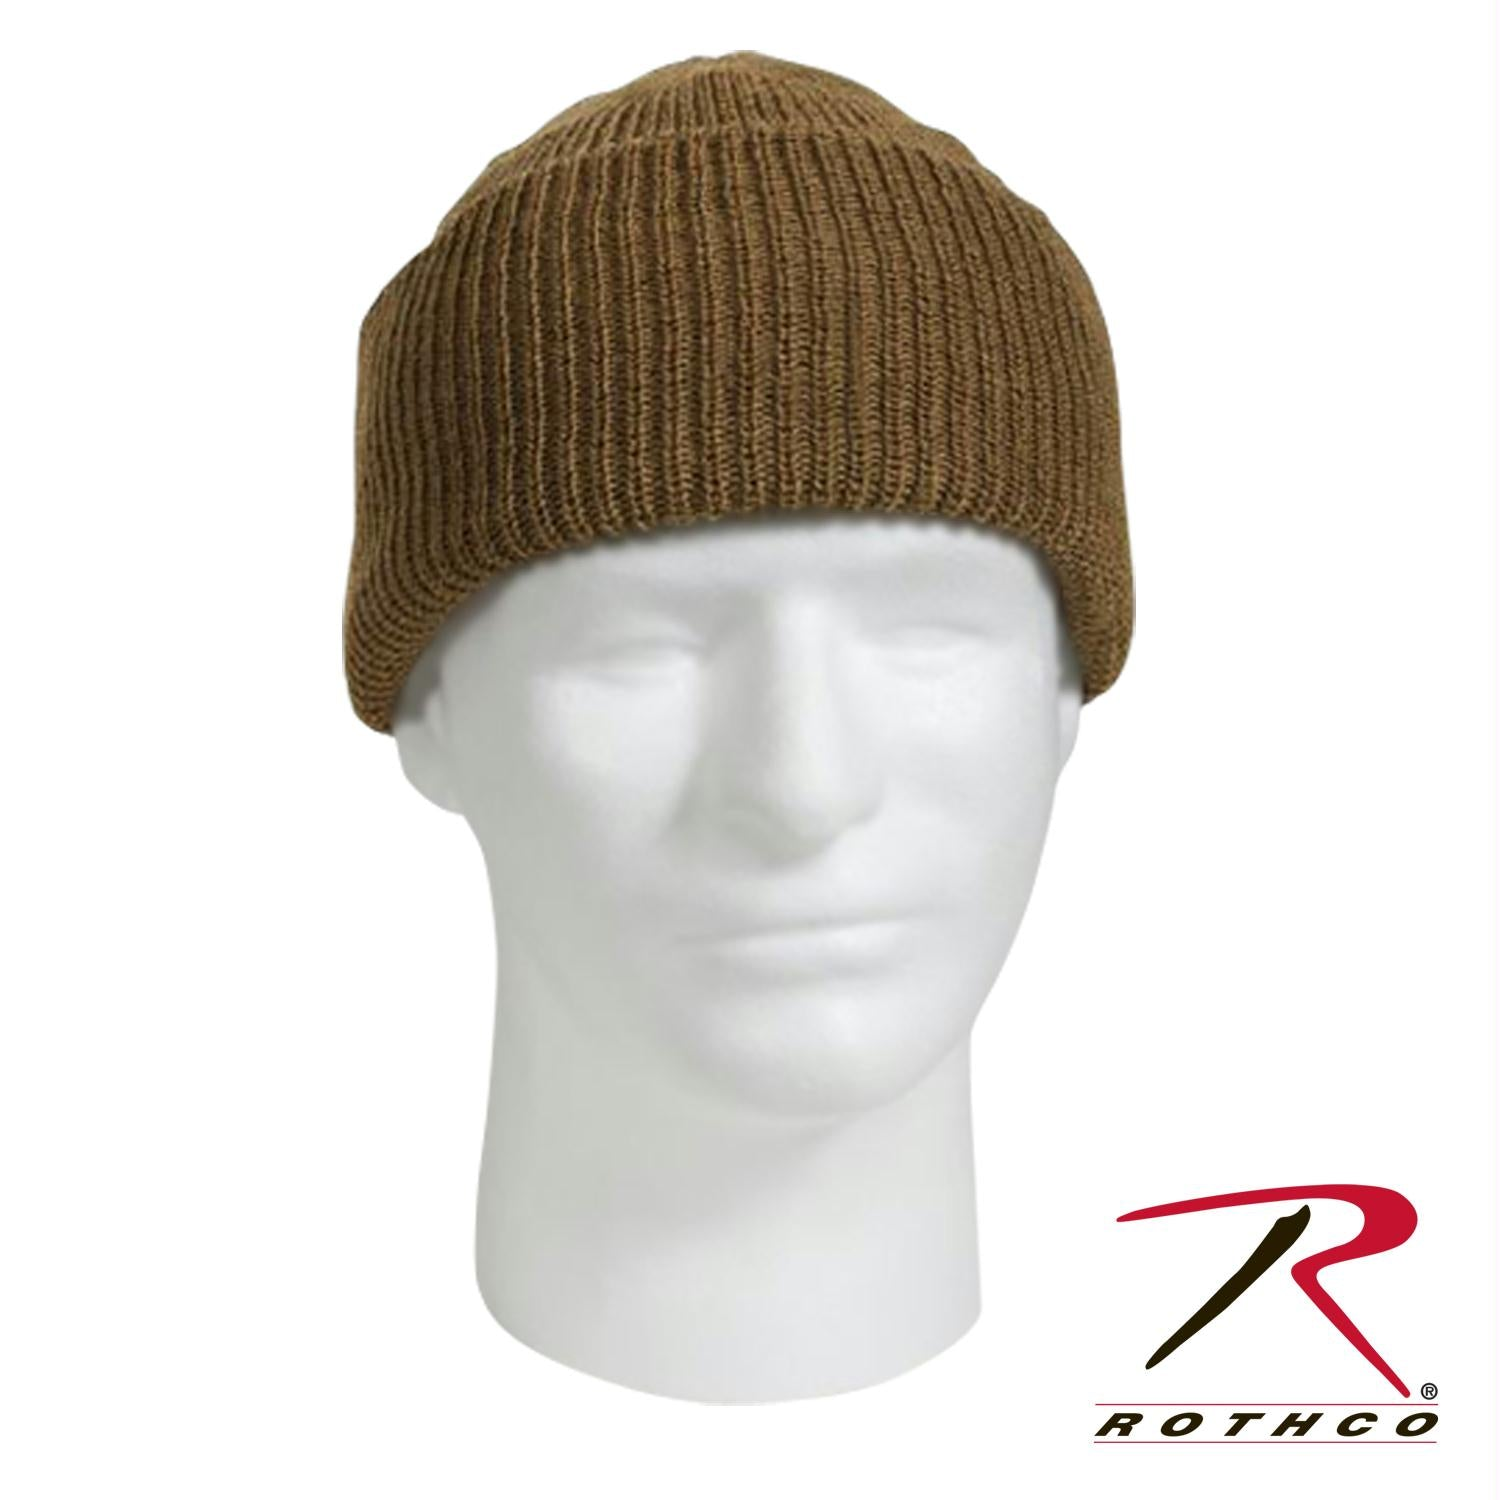 Genuine G.I. Wool Watch Cap - Coyote Brown